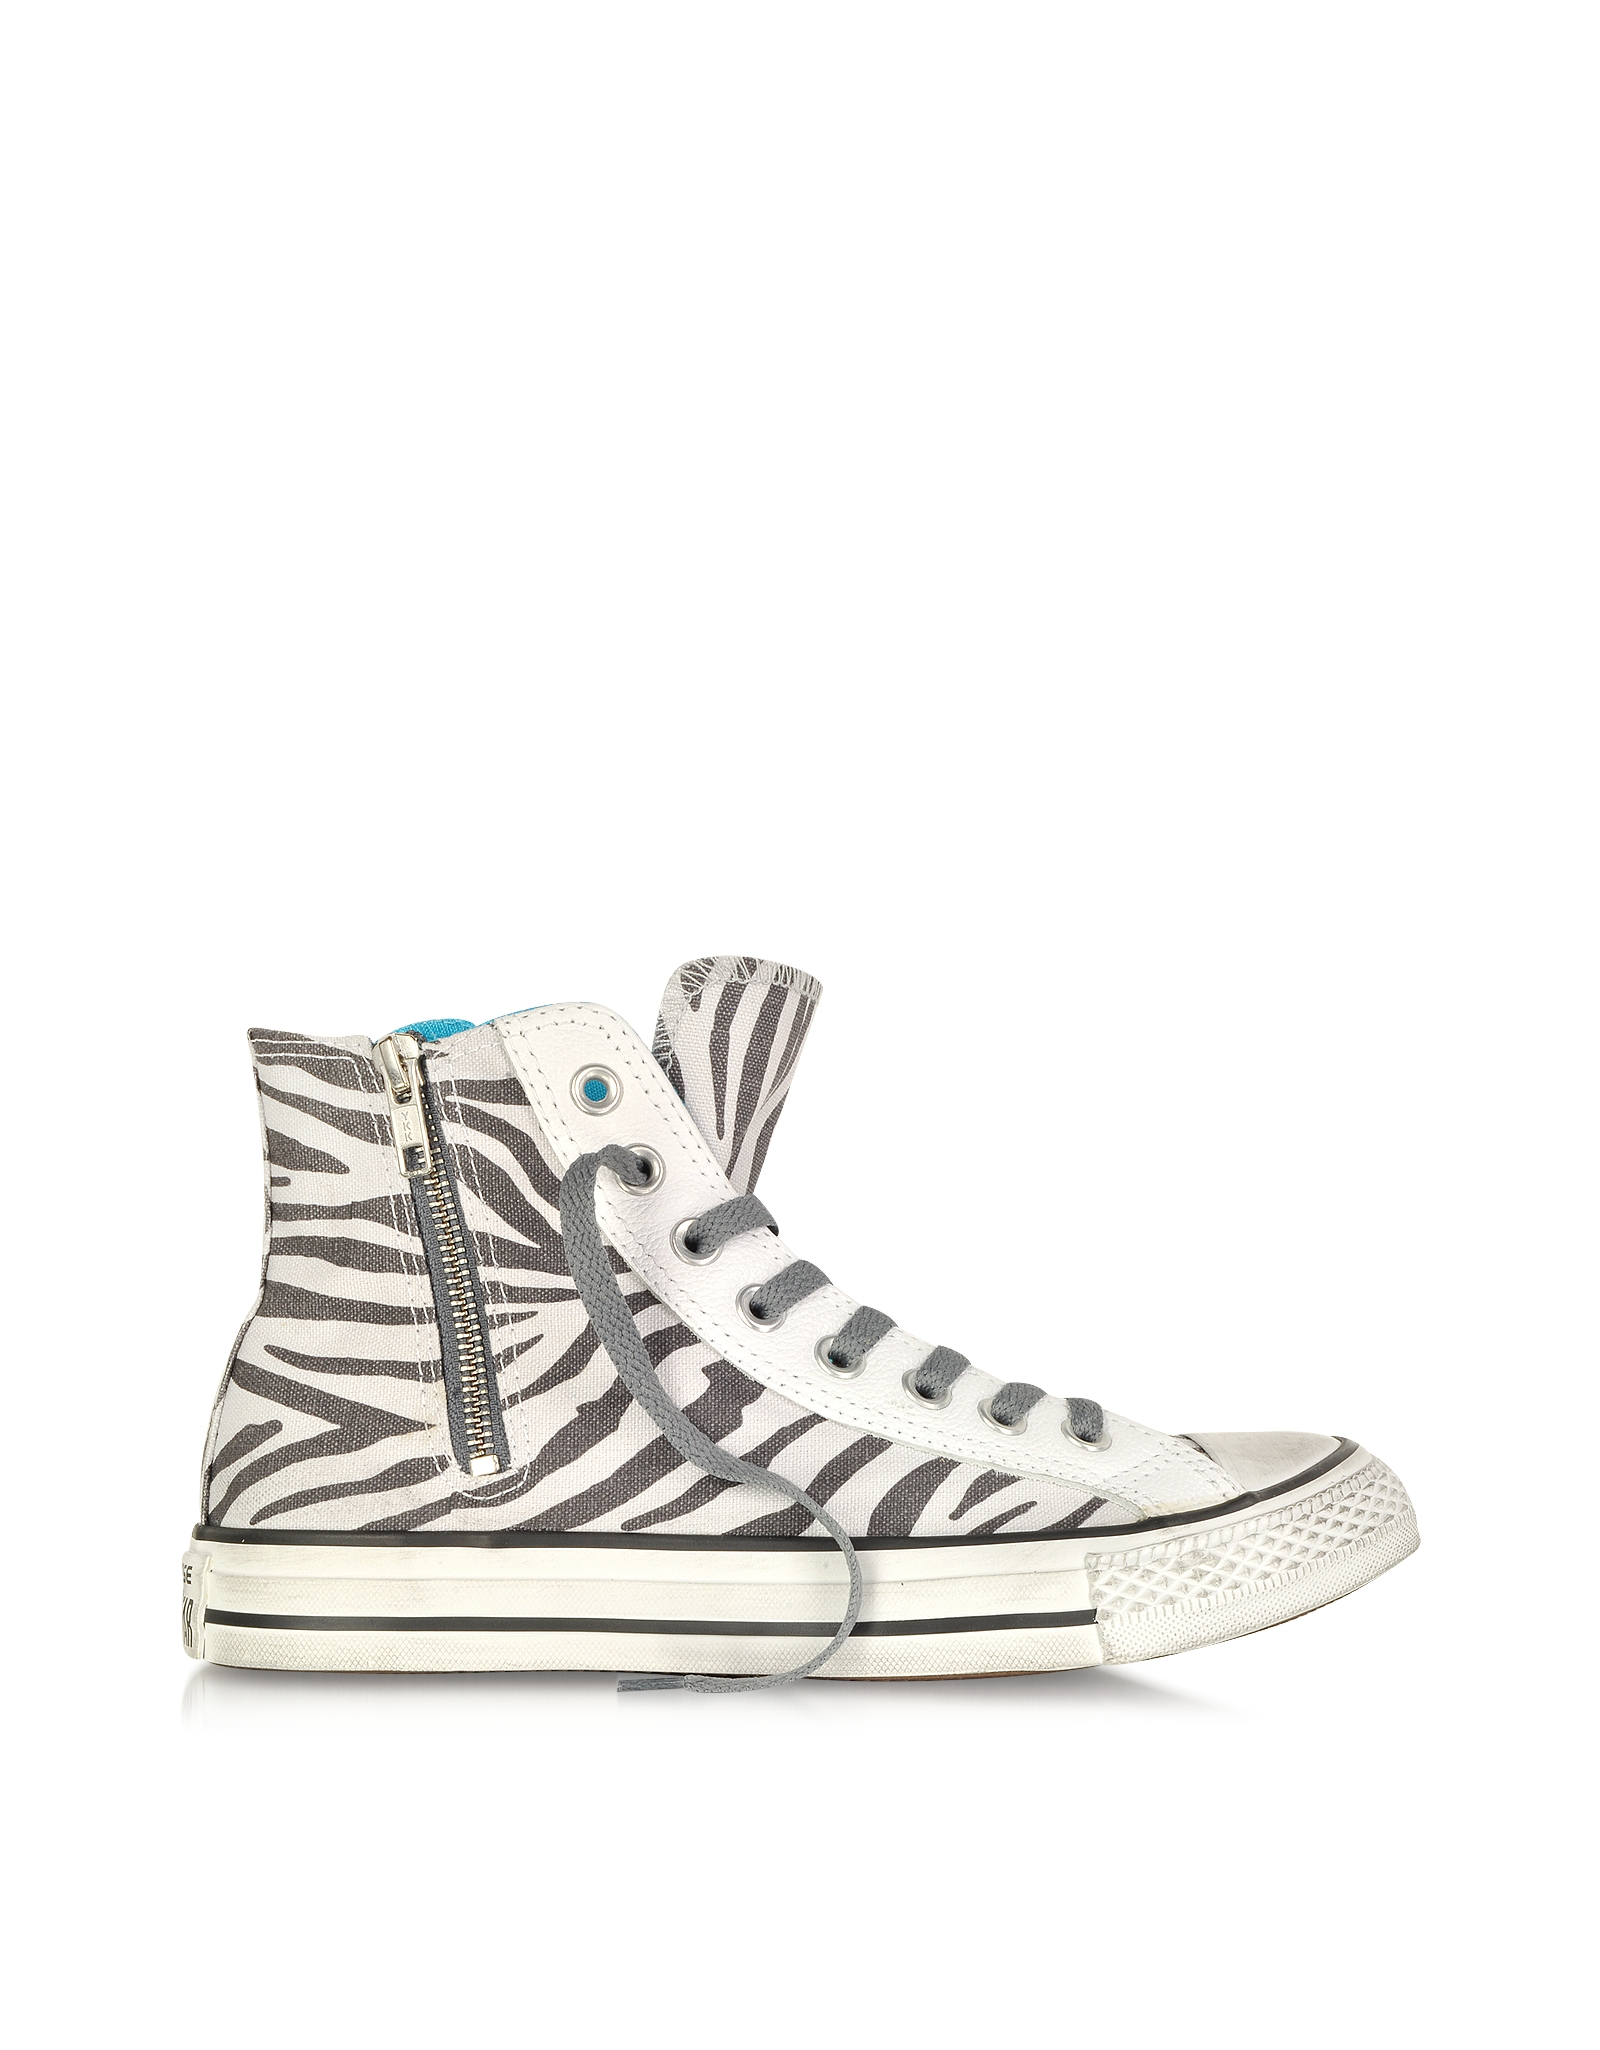 converse all star high top animal printed canvas zip. Black Bedroom Furniture Sets. Home Design Ideas